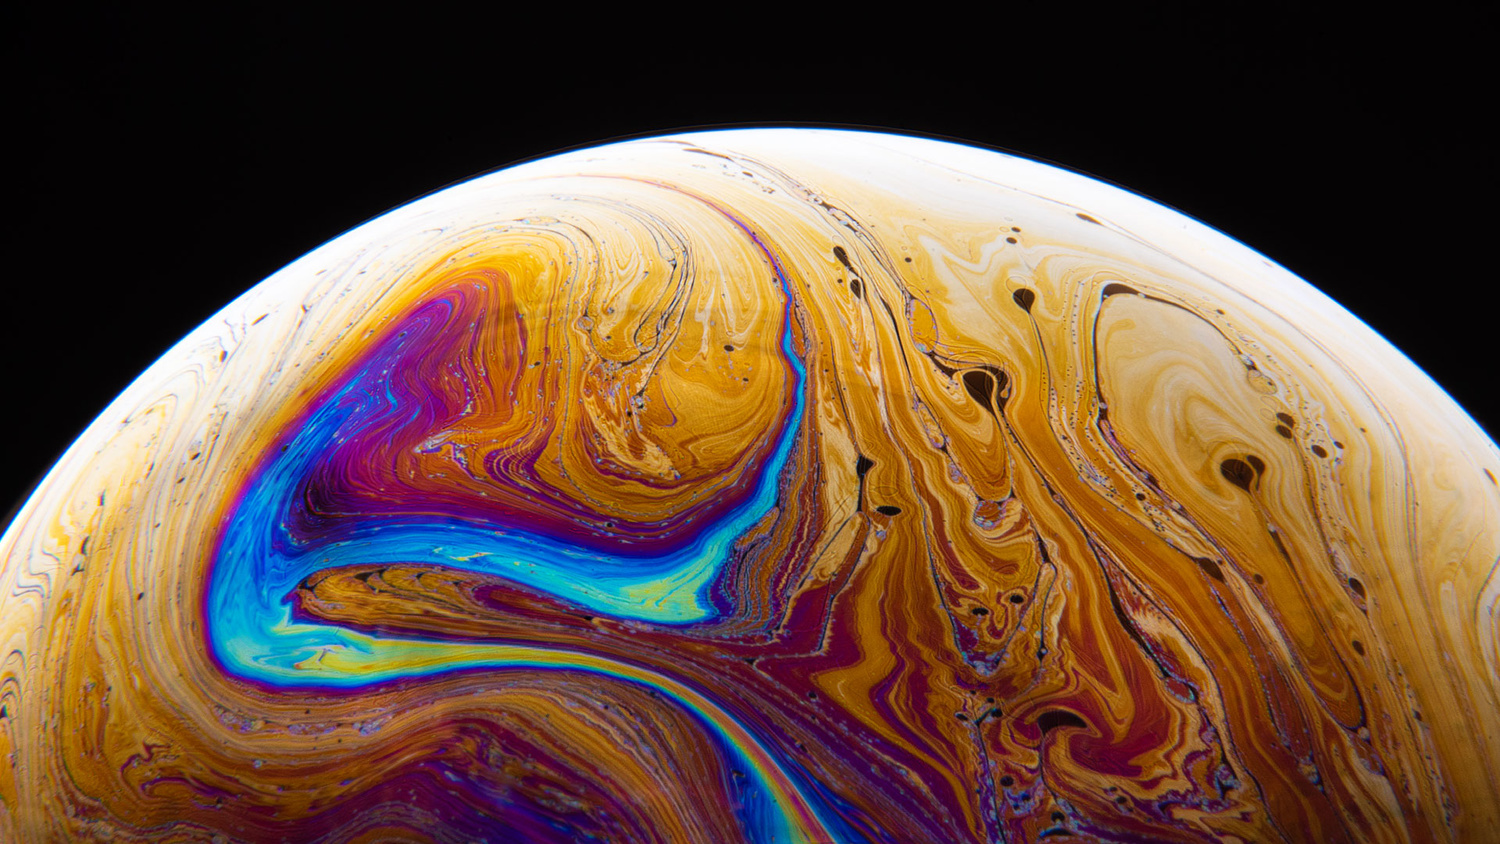 Turbulent bubble and irridescence